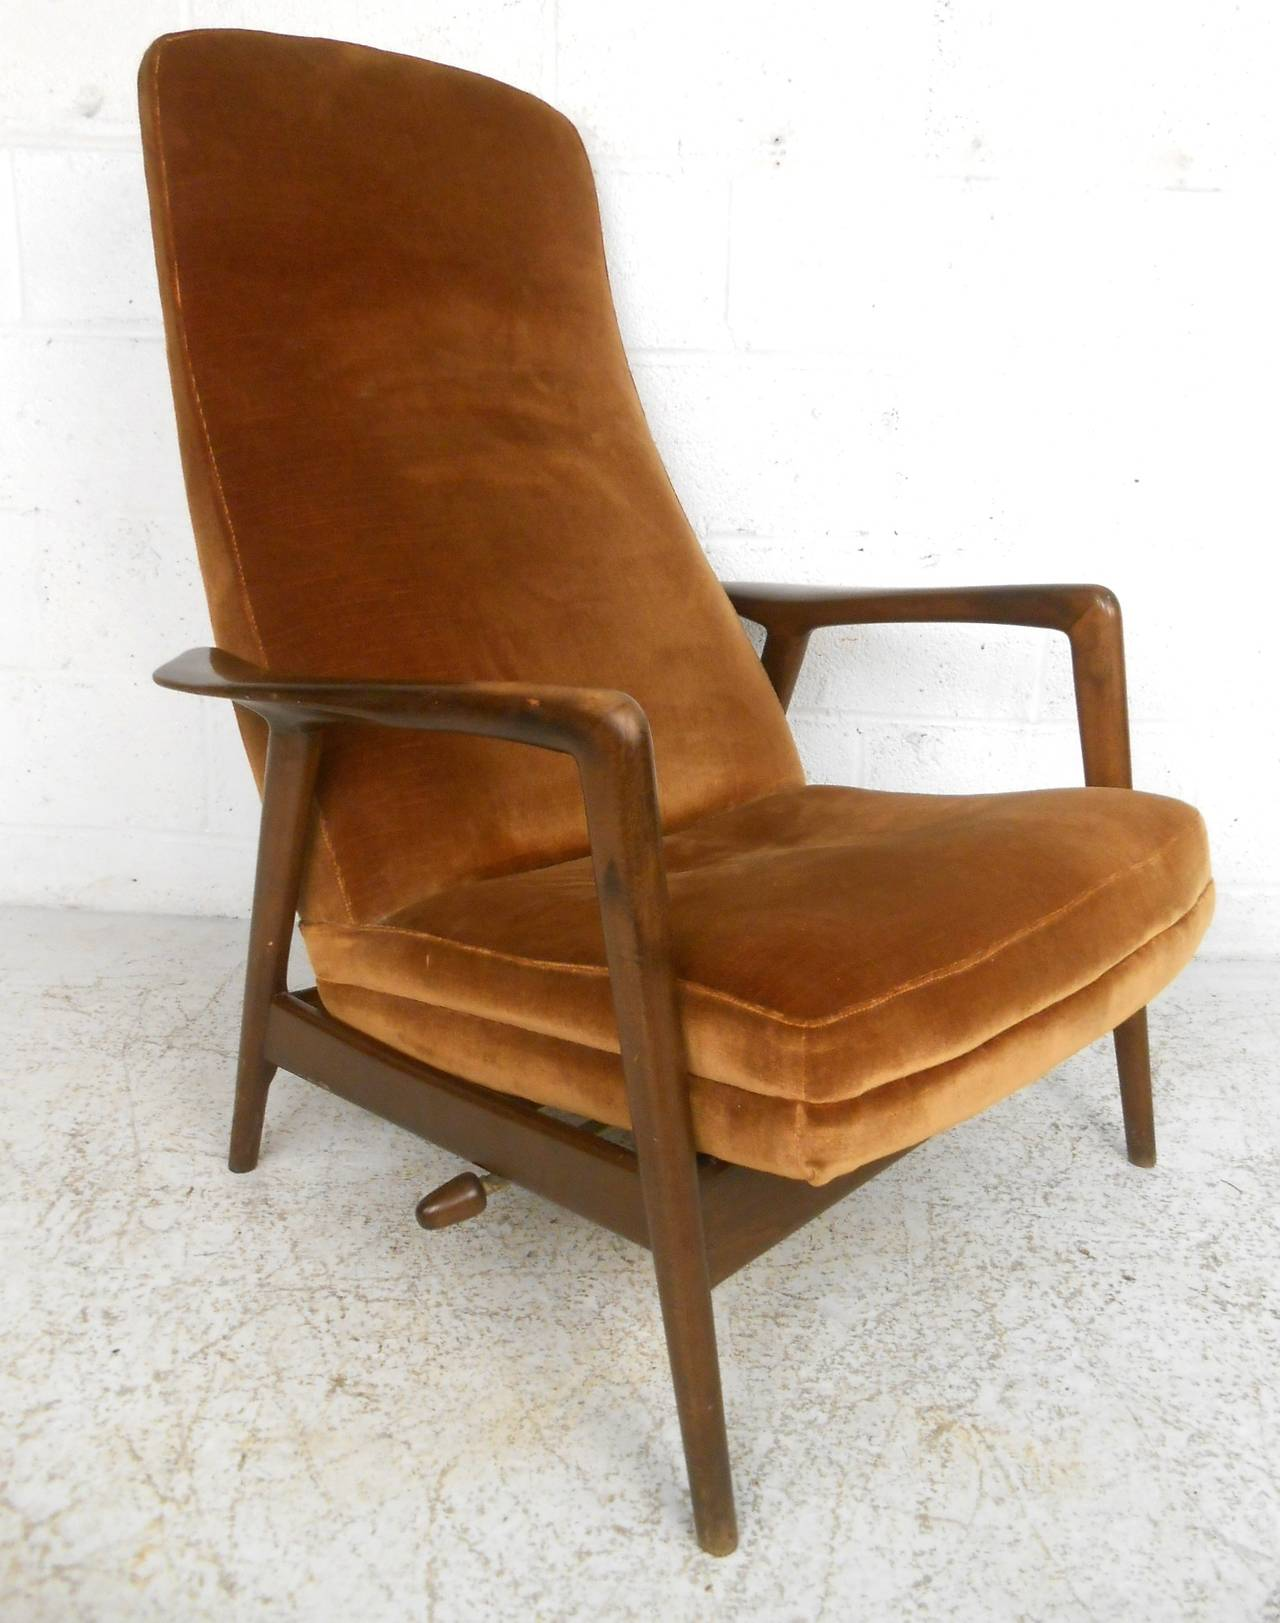 Mid Century Chair And Ottoman Mid Century Modern Folke Ohlsson Lounge Chair And Ottoman